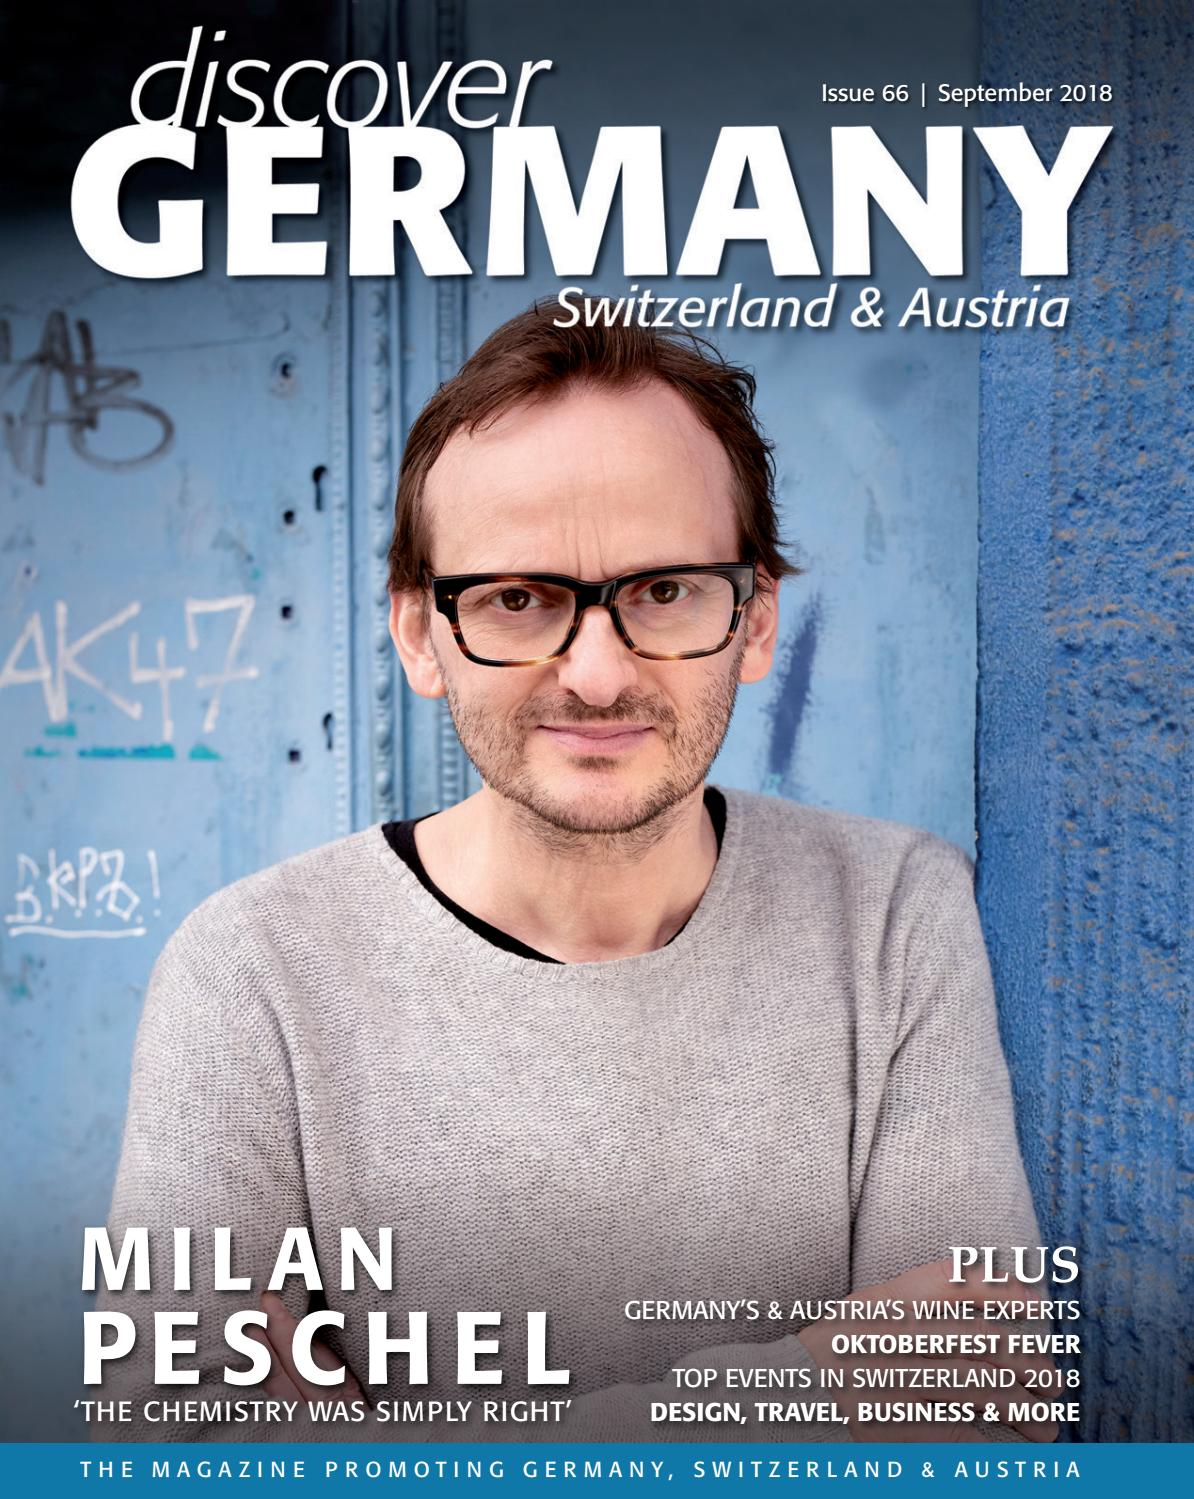 Discover Germany Issue 66 September 2018 By Scan Client